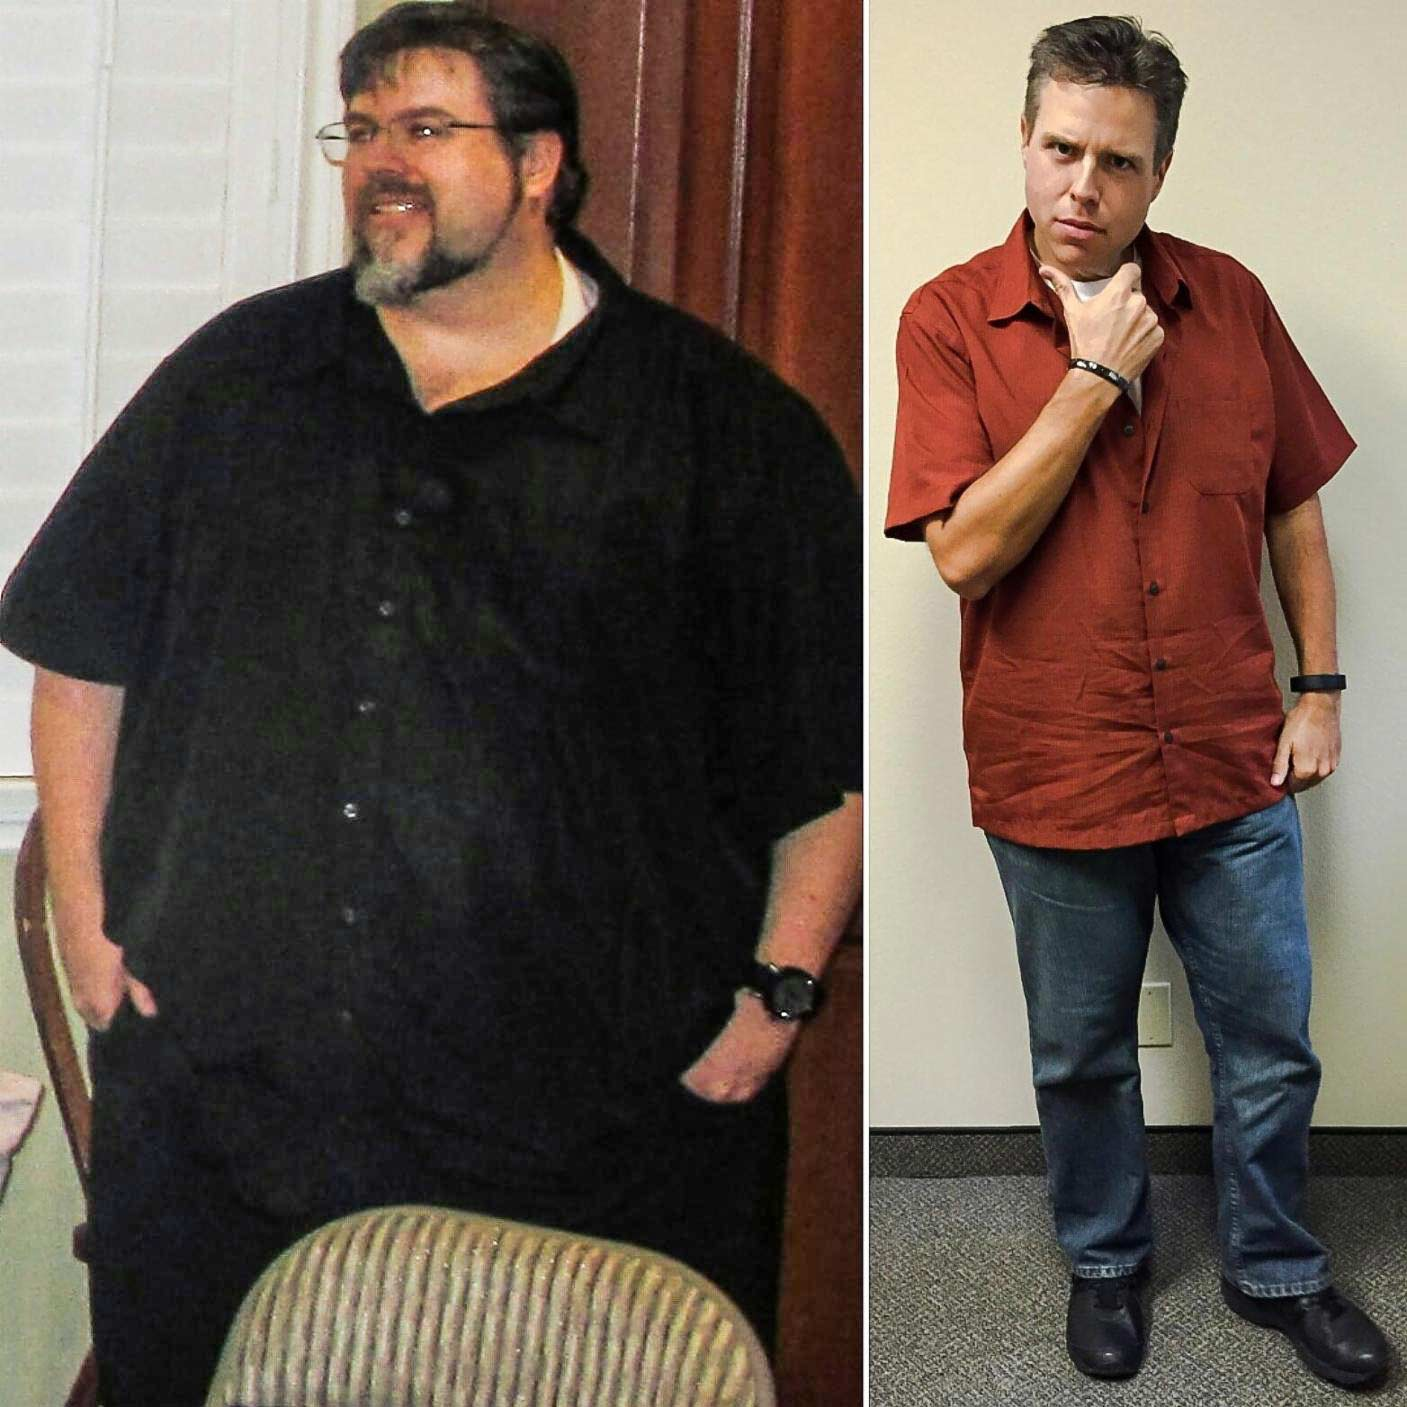 losing a total of 245 lbs